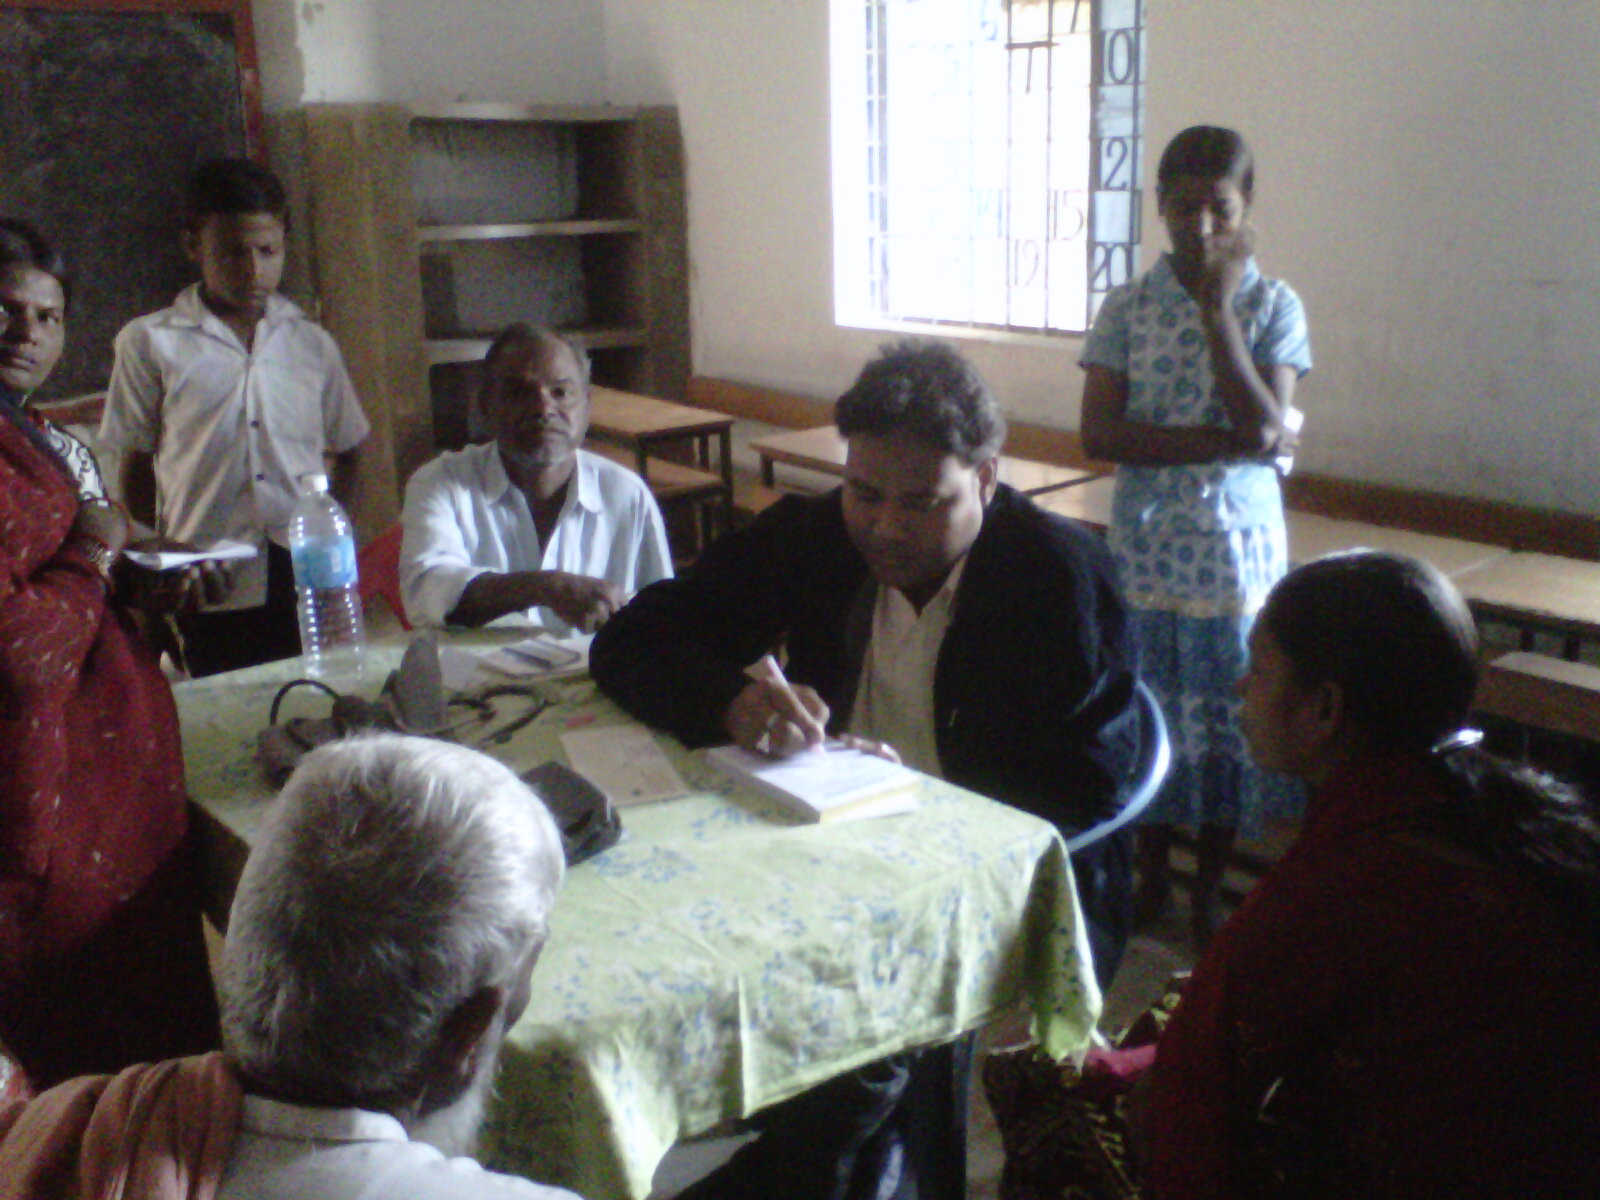 Dr. Amulya Kumar Nayak attending to patients